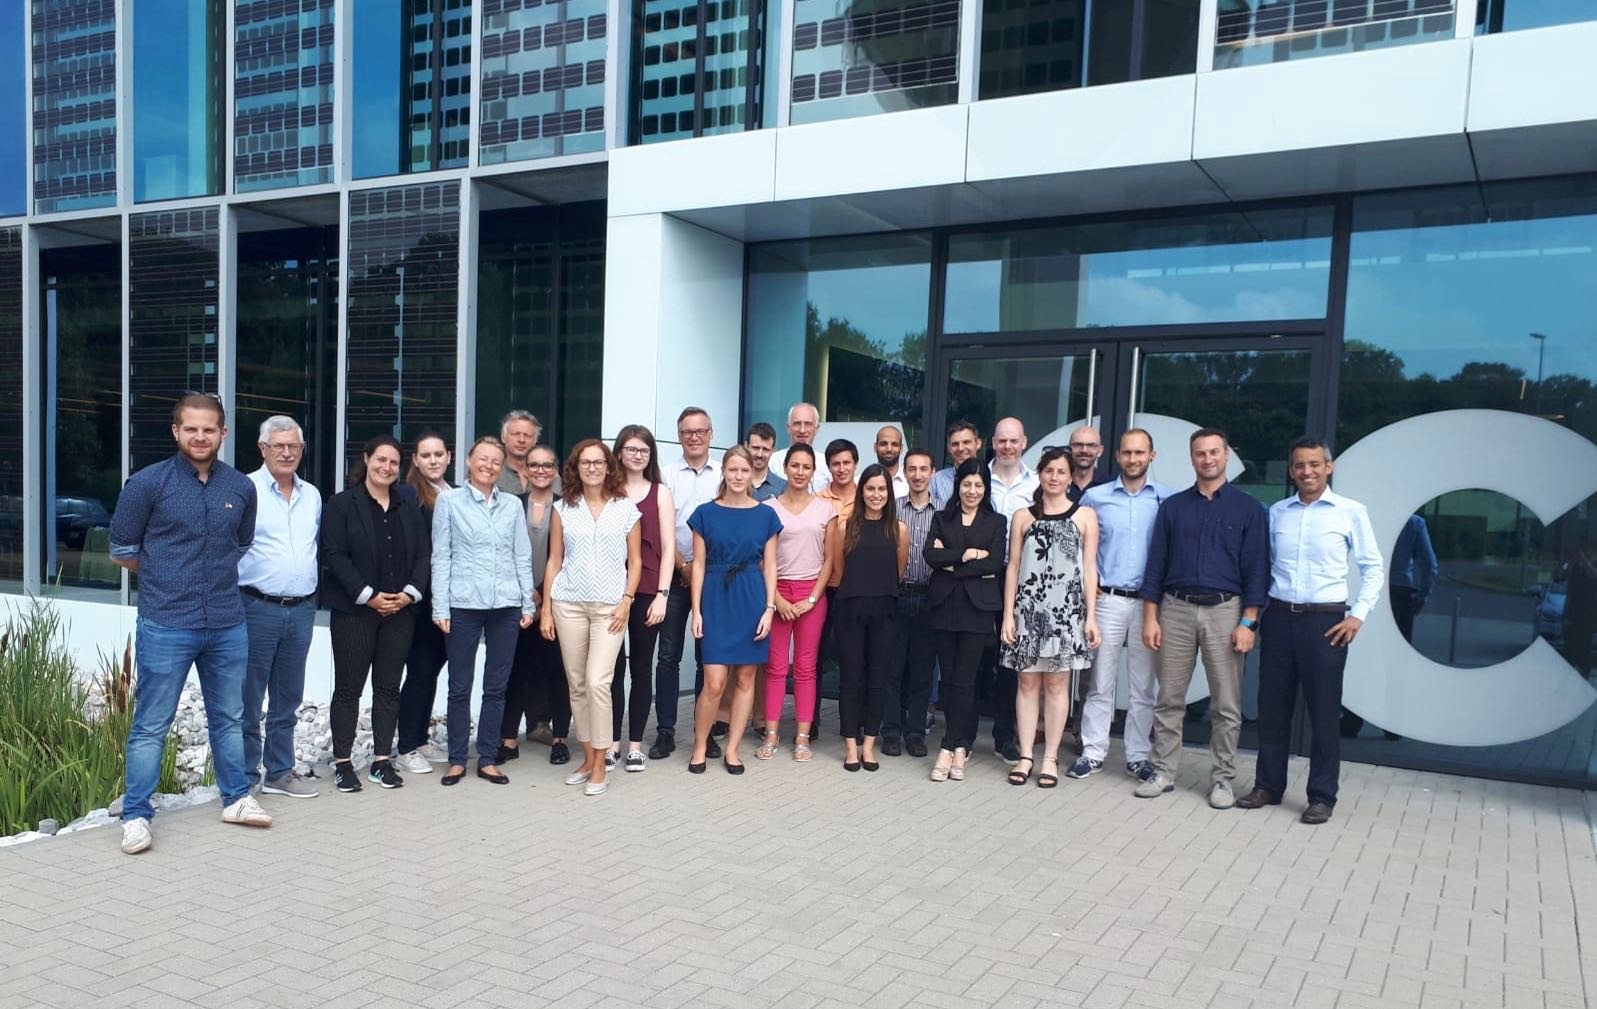 July 2018: Ioannis attends the EENSULATE general assembly meeting and discuss latest developments in thermochromic glazing